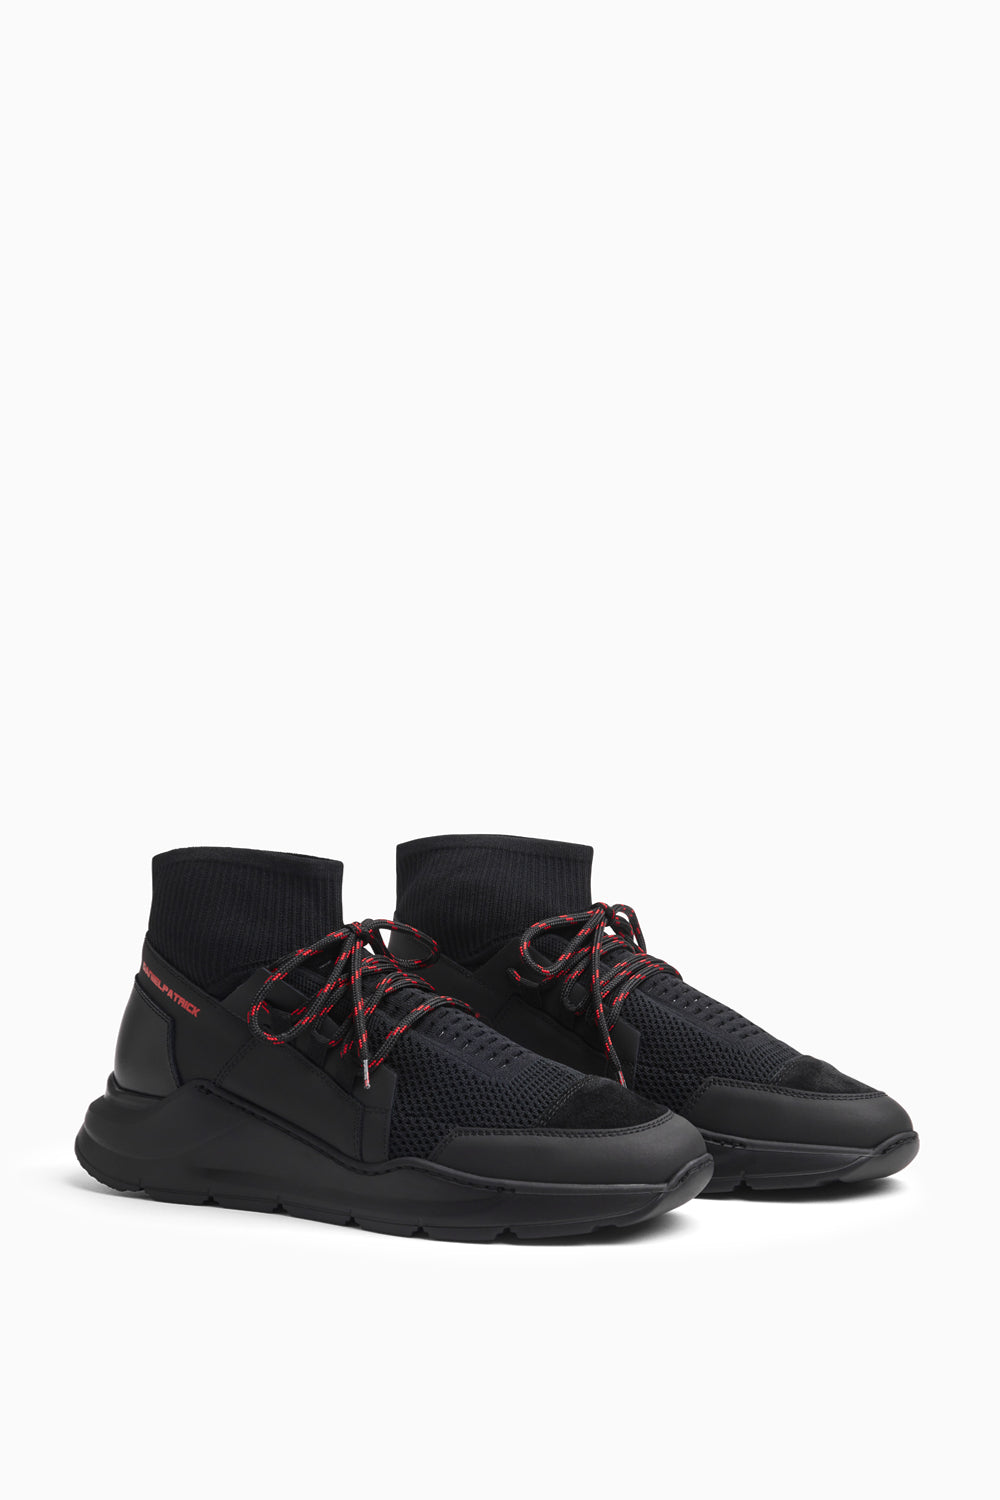 concept sock runner in black/red by daniel patrick